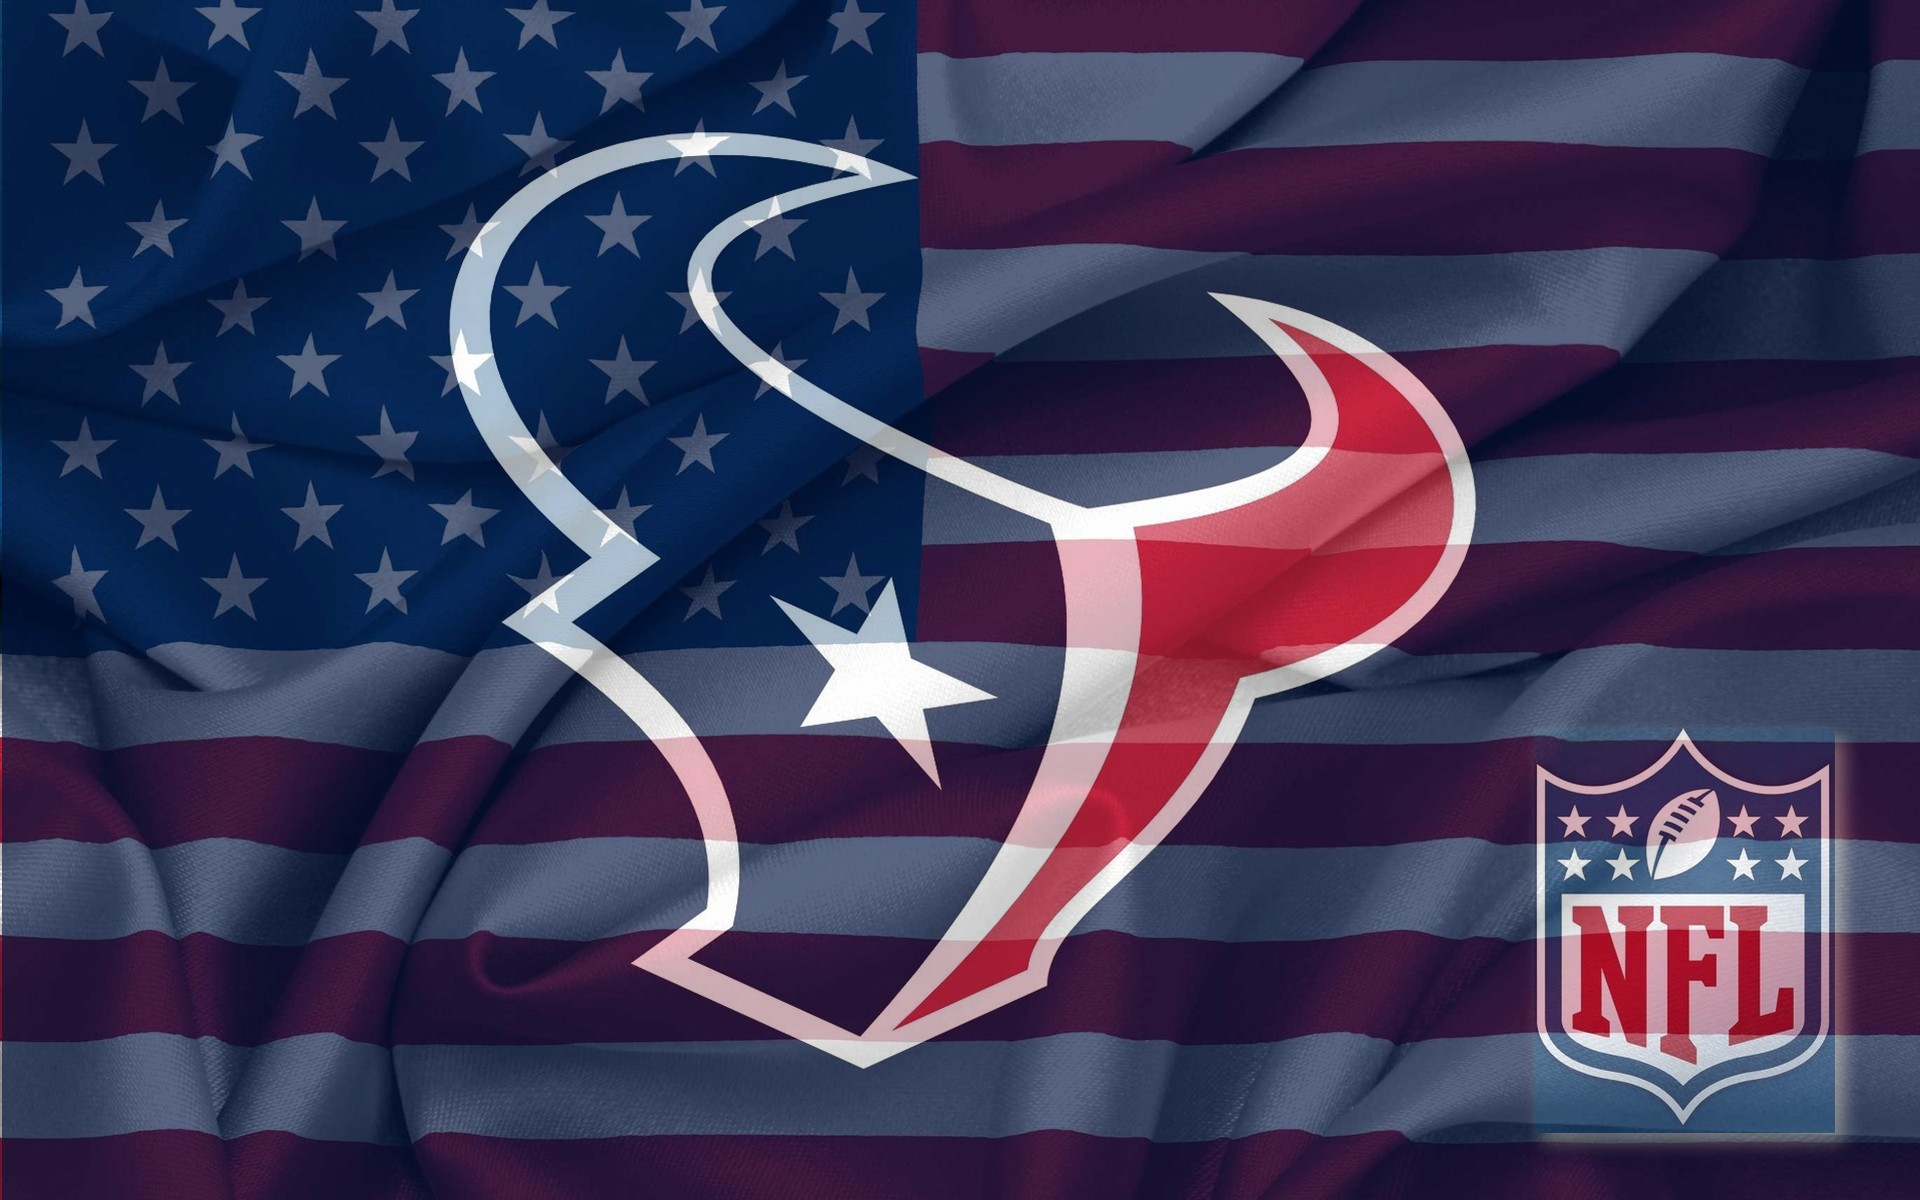 NFL Houston Texans Logo With NFL Logo On USA American Flag Background 1920x1200